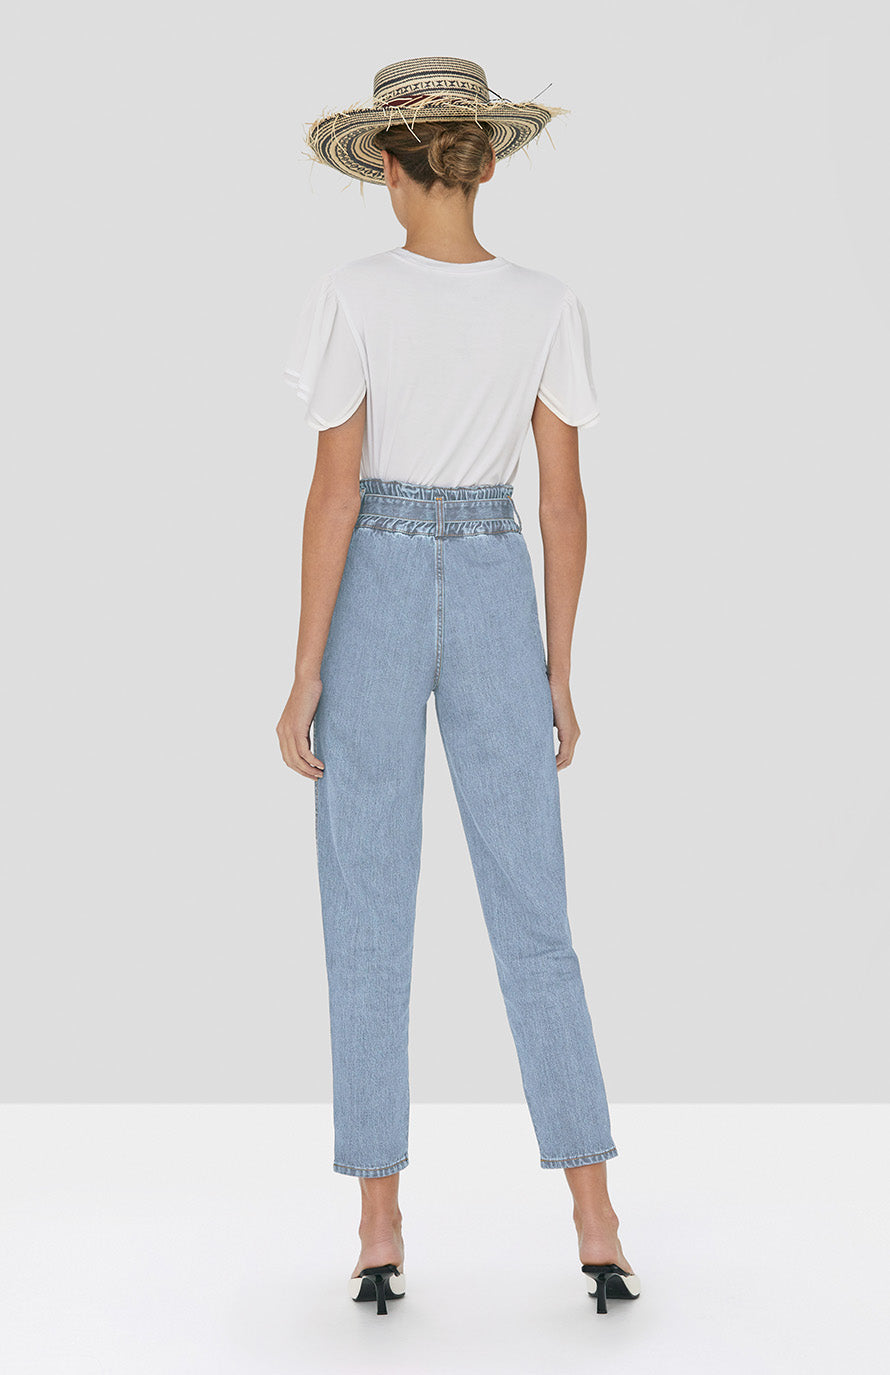 Alexis Ronson Top in White and Stannis Denim Pant in Light Denim from Spring Summer 2020 - Rear View